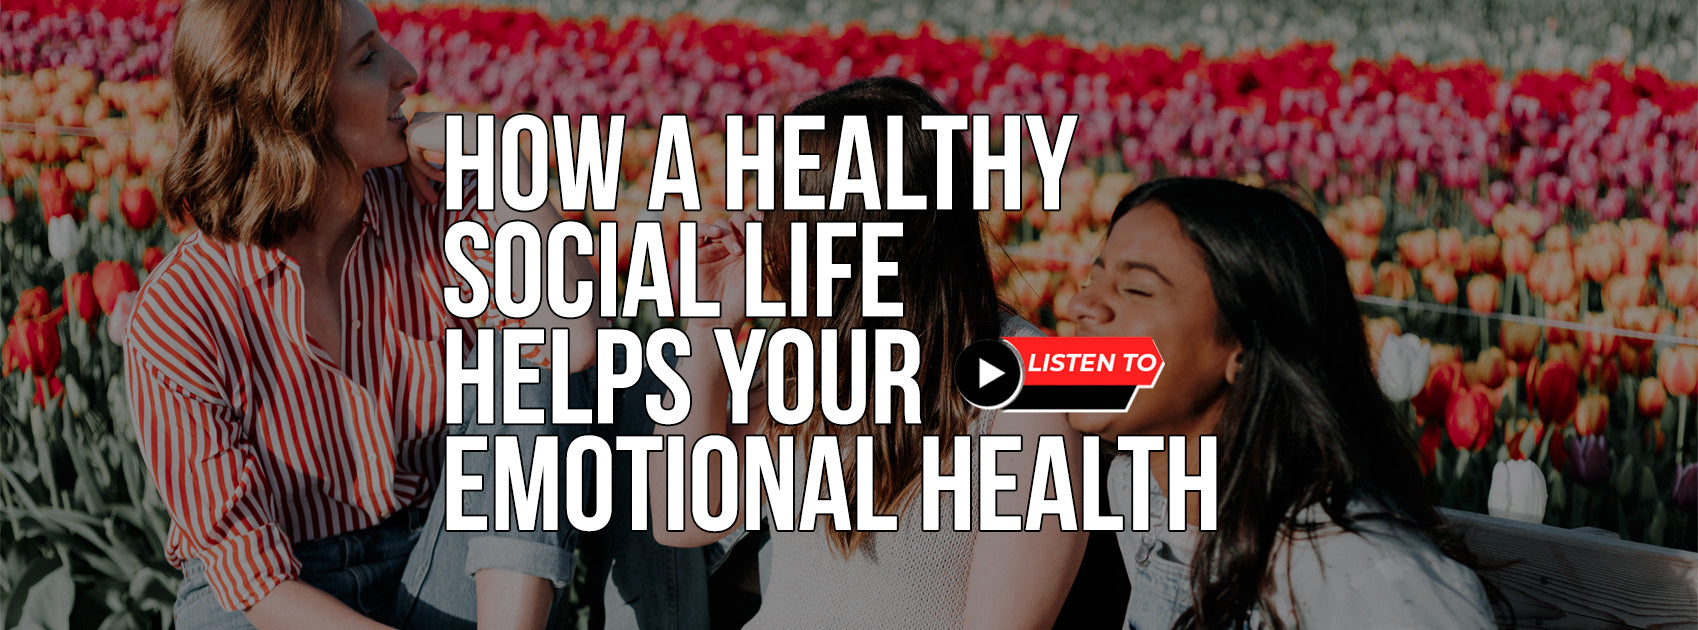 How A Healthy Social Life Helps Your Emotional Health